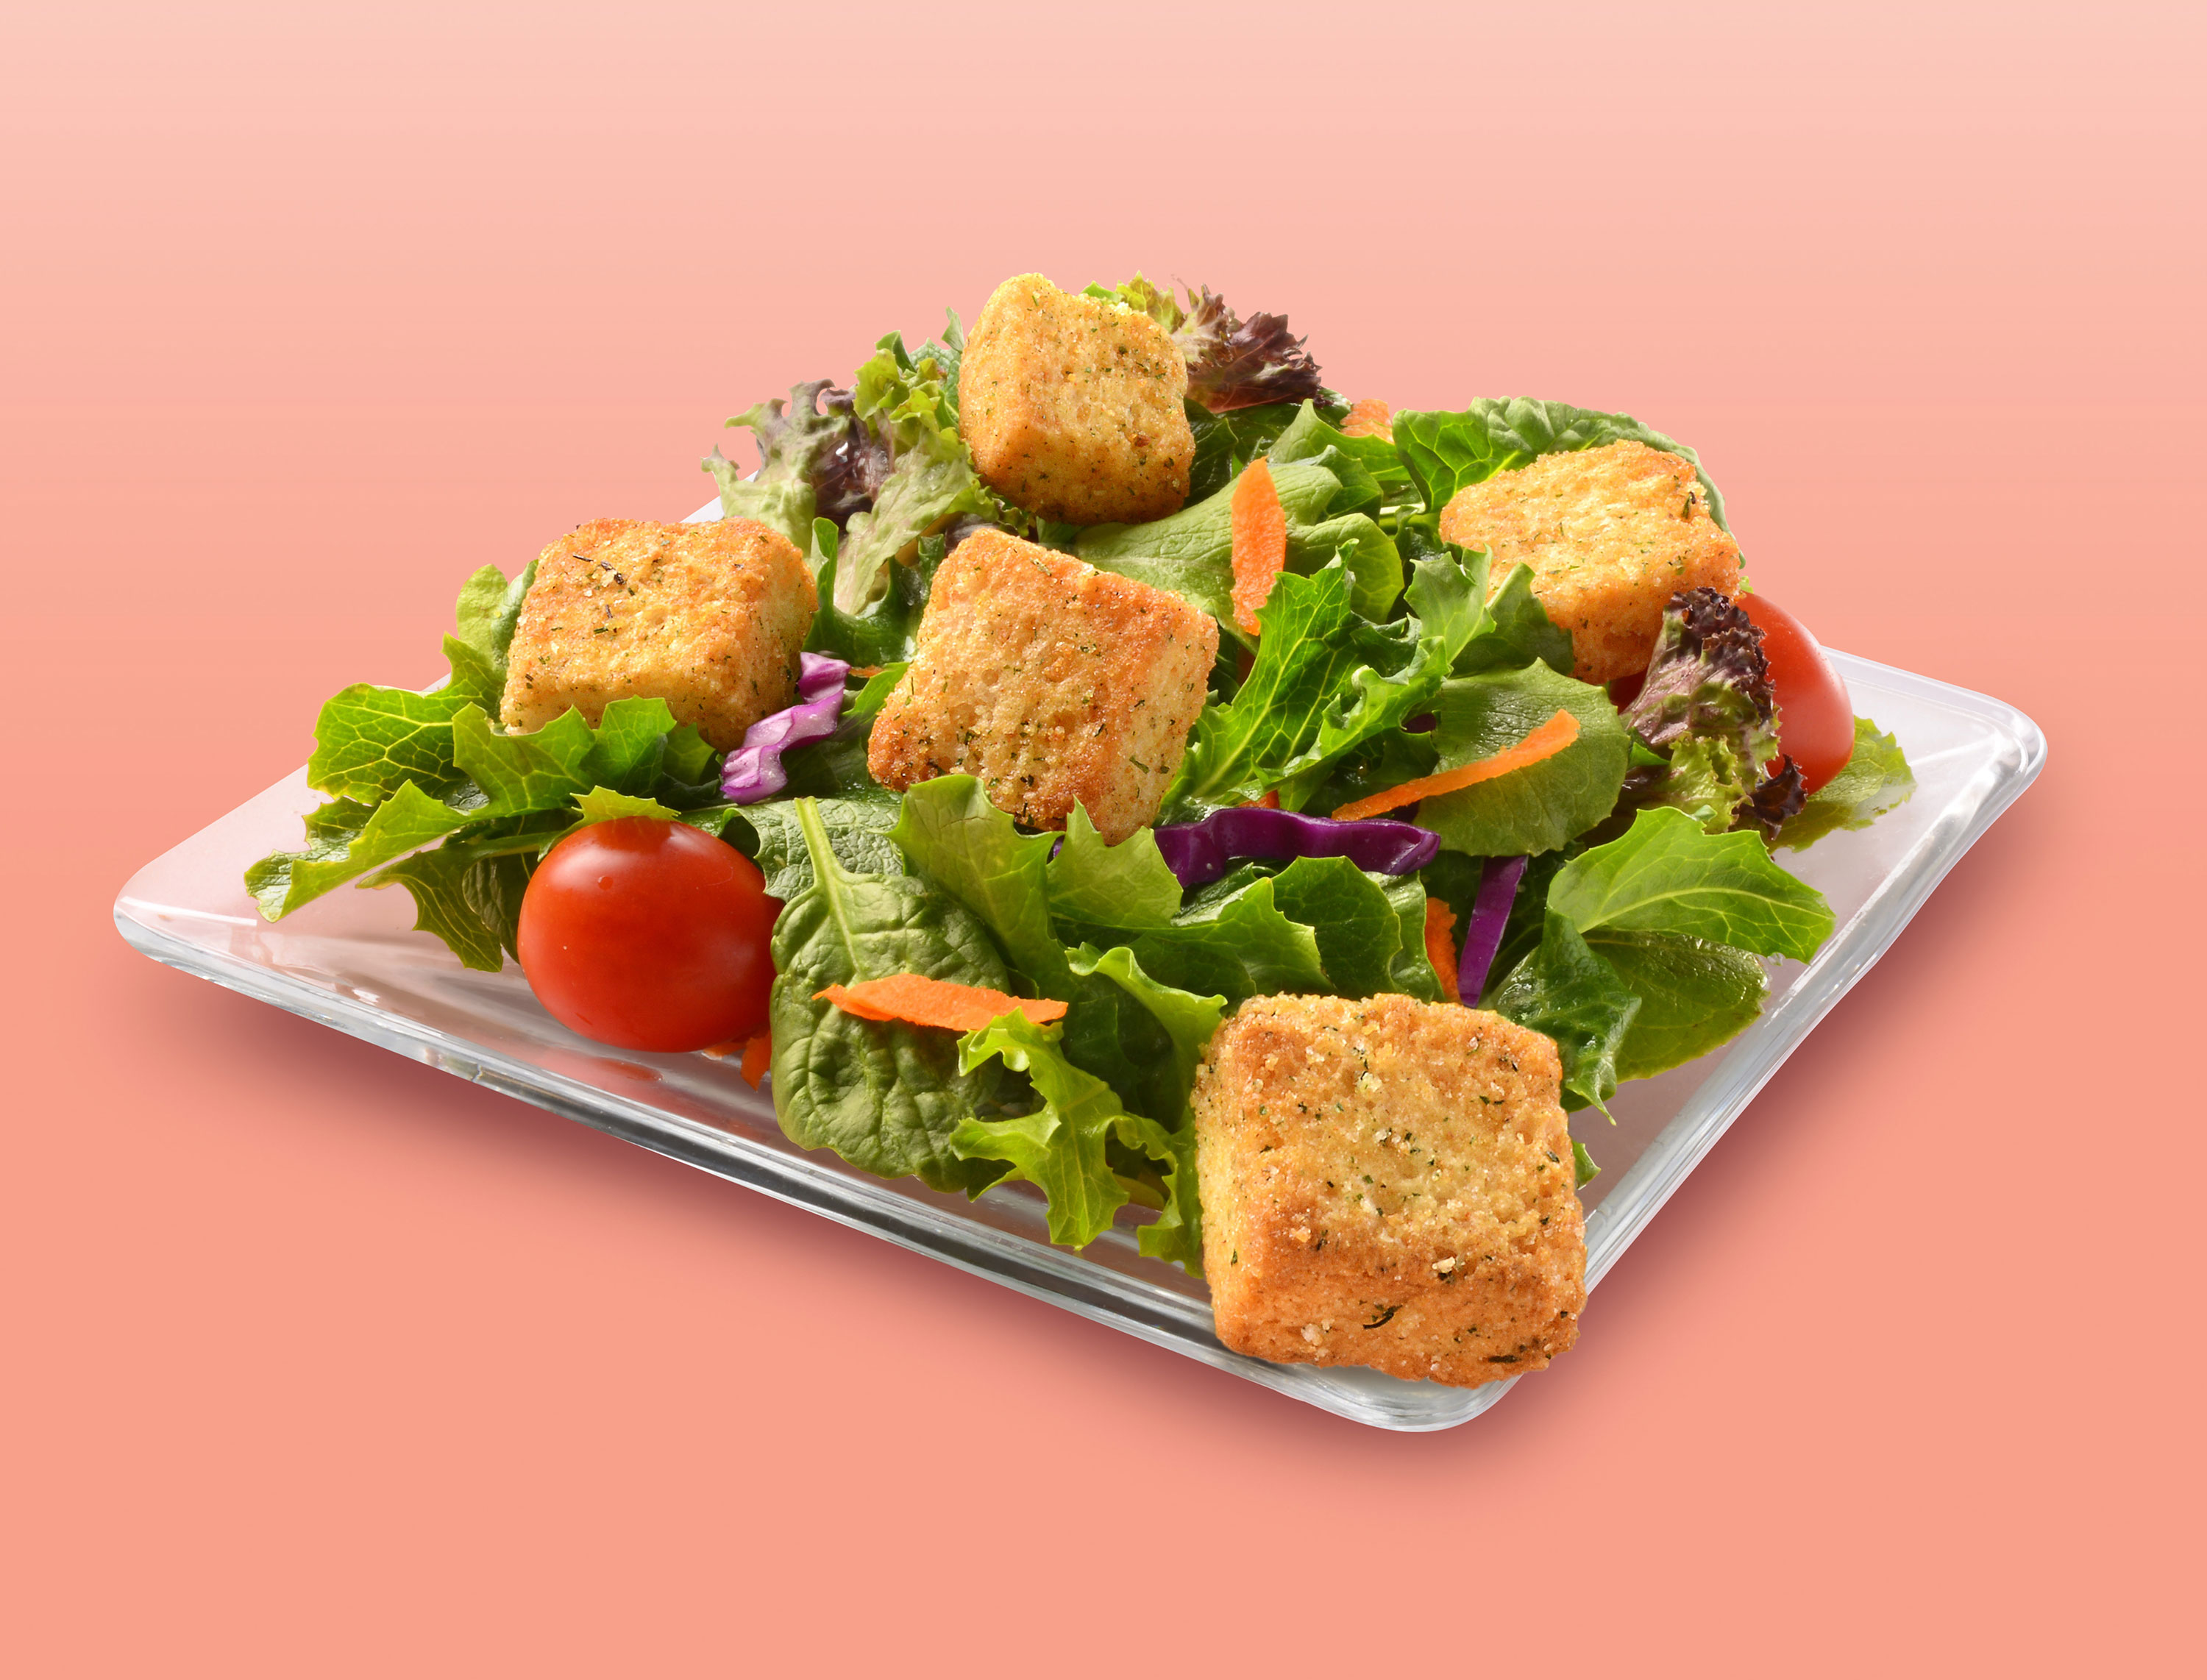 mike wepplo photoreal photography salad tomato carrot lettuce croutons